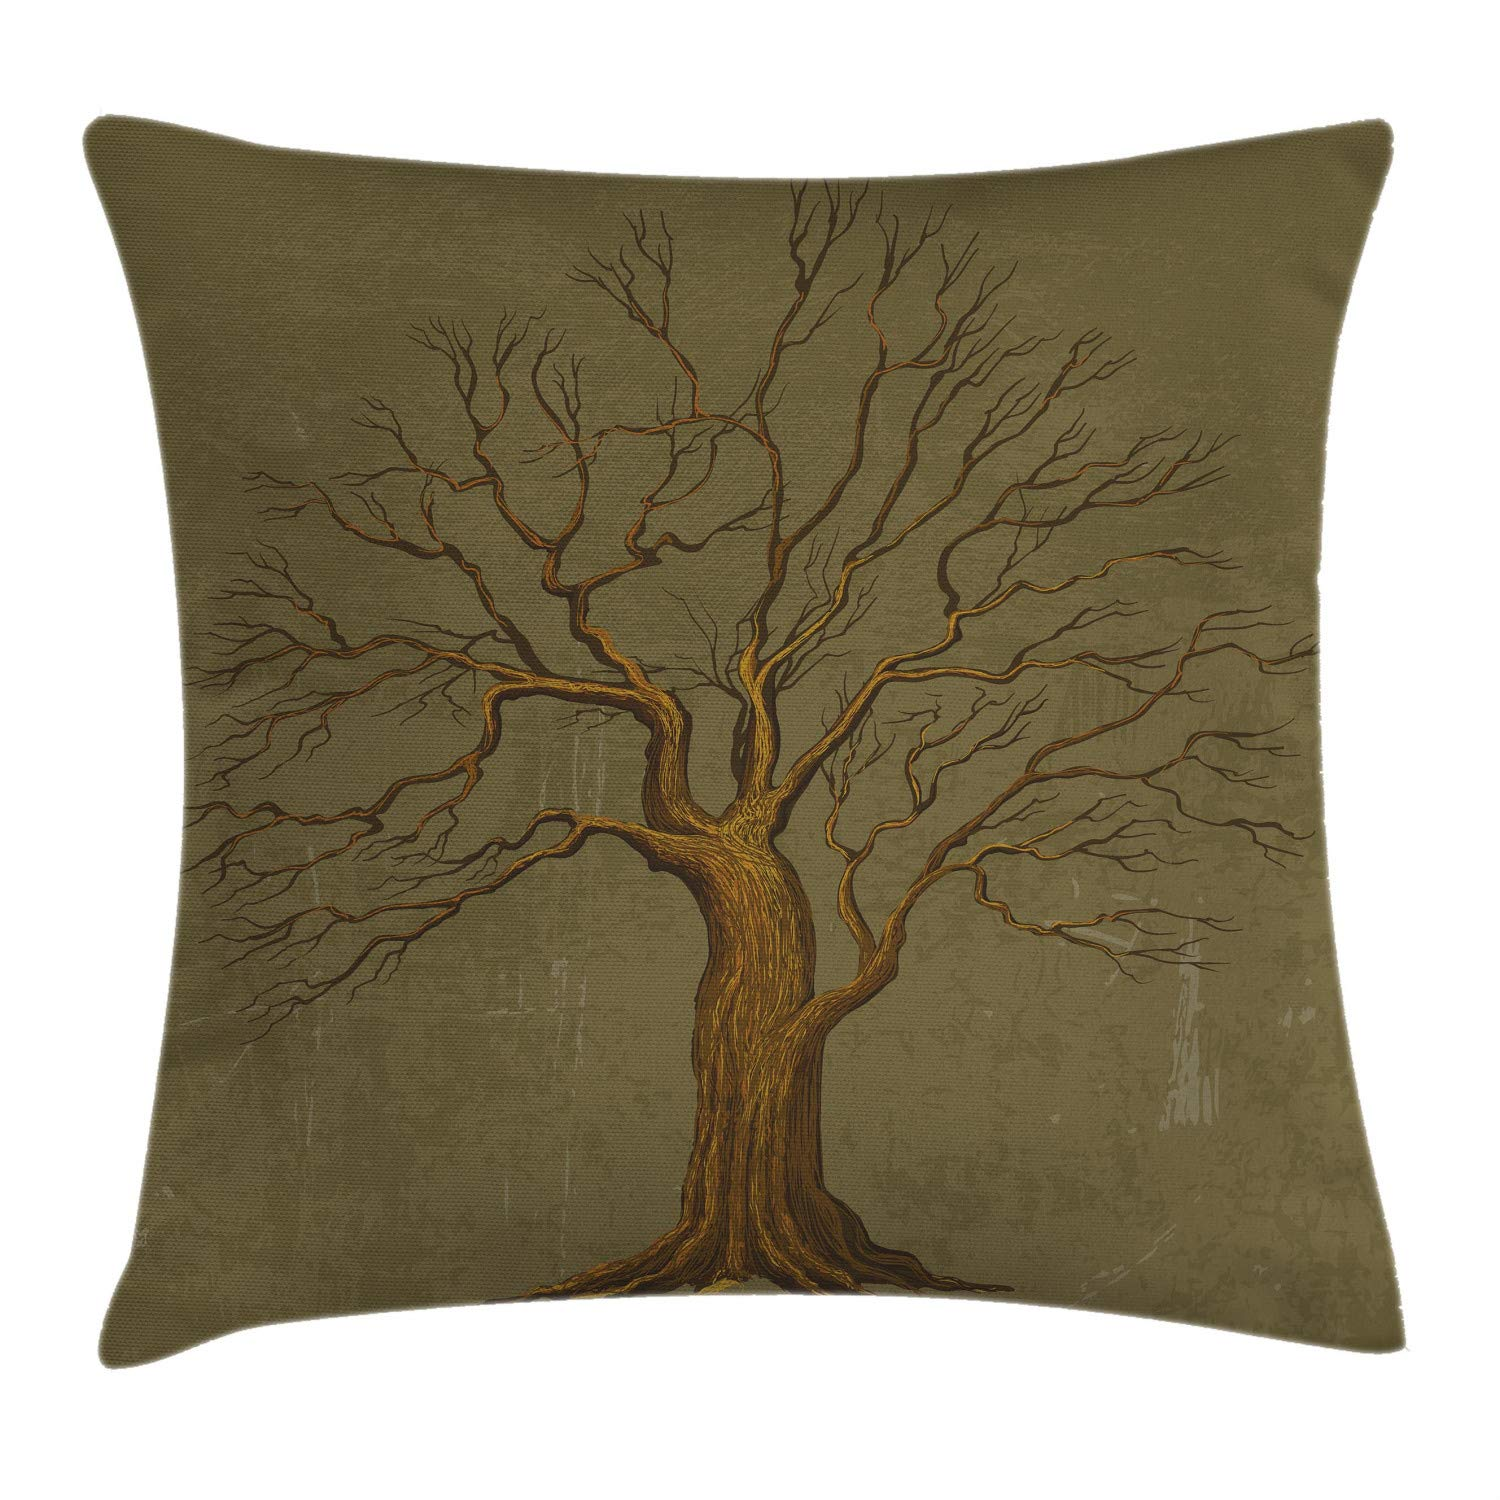 Ambesonne Tree Throw Pillow Cushion Cover, Illustration of a Big Tree on Antique Old Paper Vintage Style Artwork Design Print, Decorative Square Accent Pillow Case, 24'' X 24'', Olive Green by Ambesonne